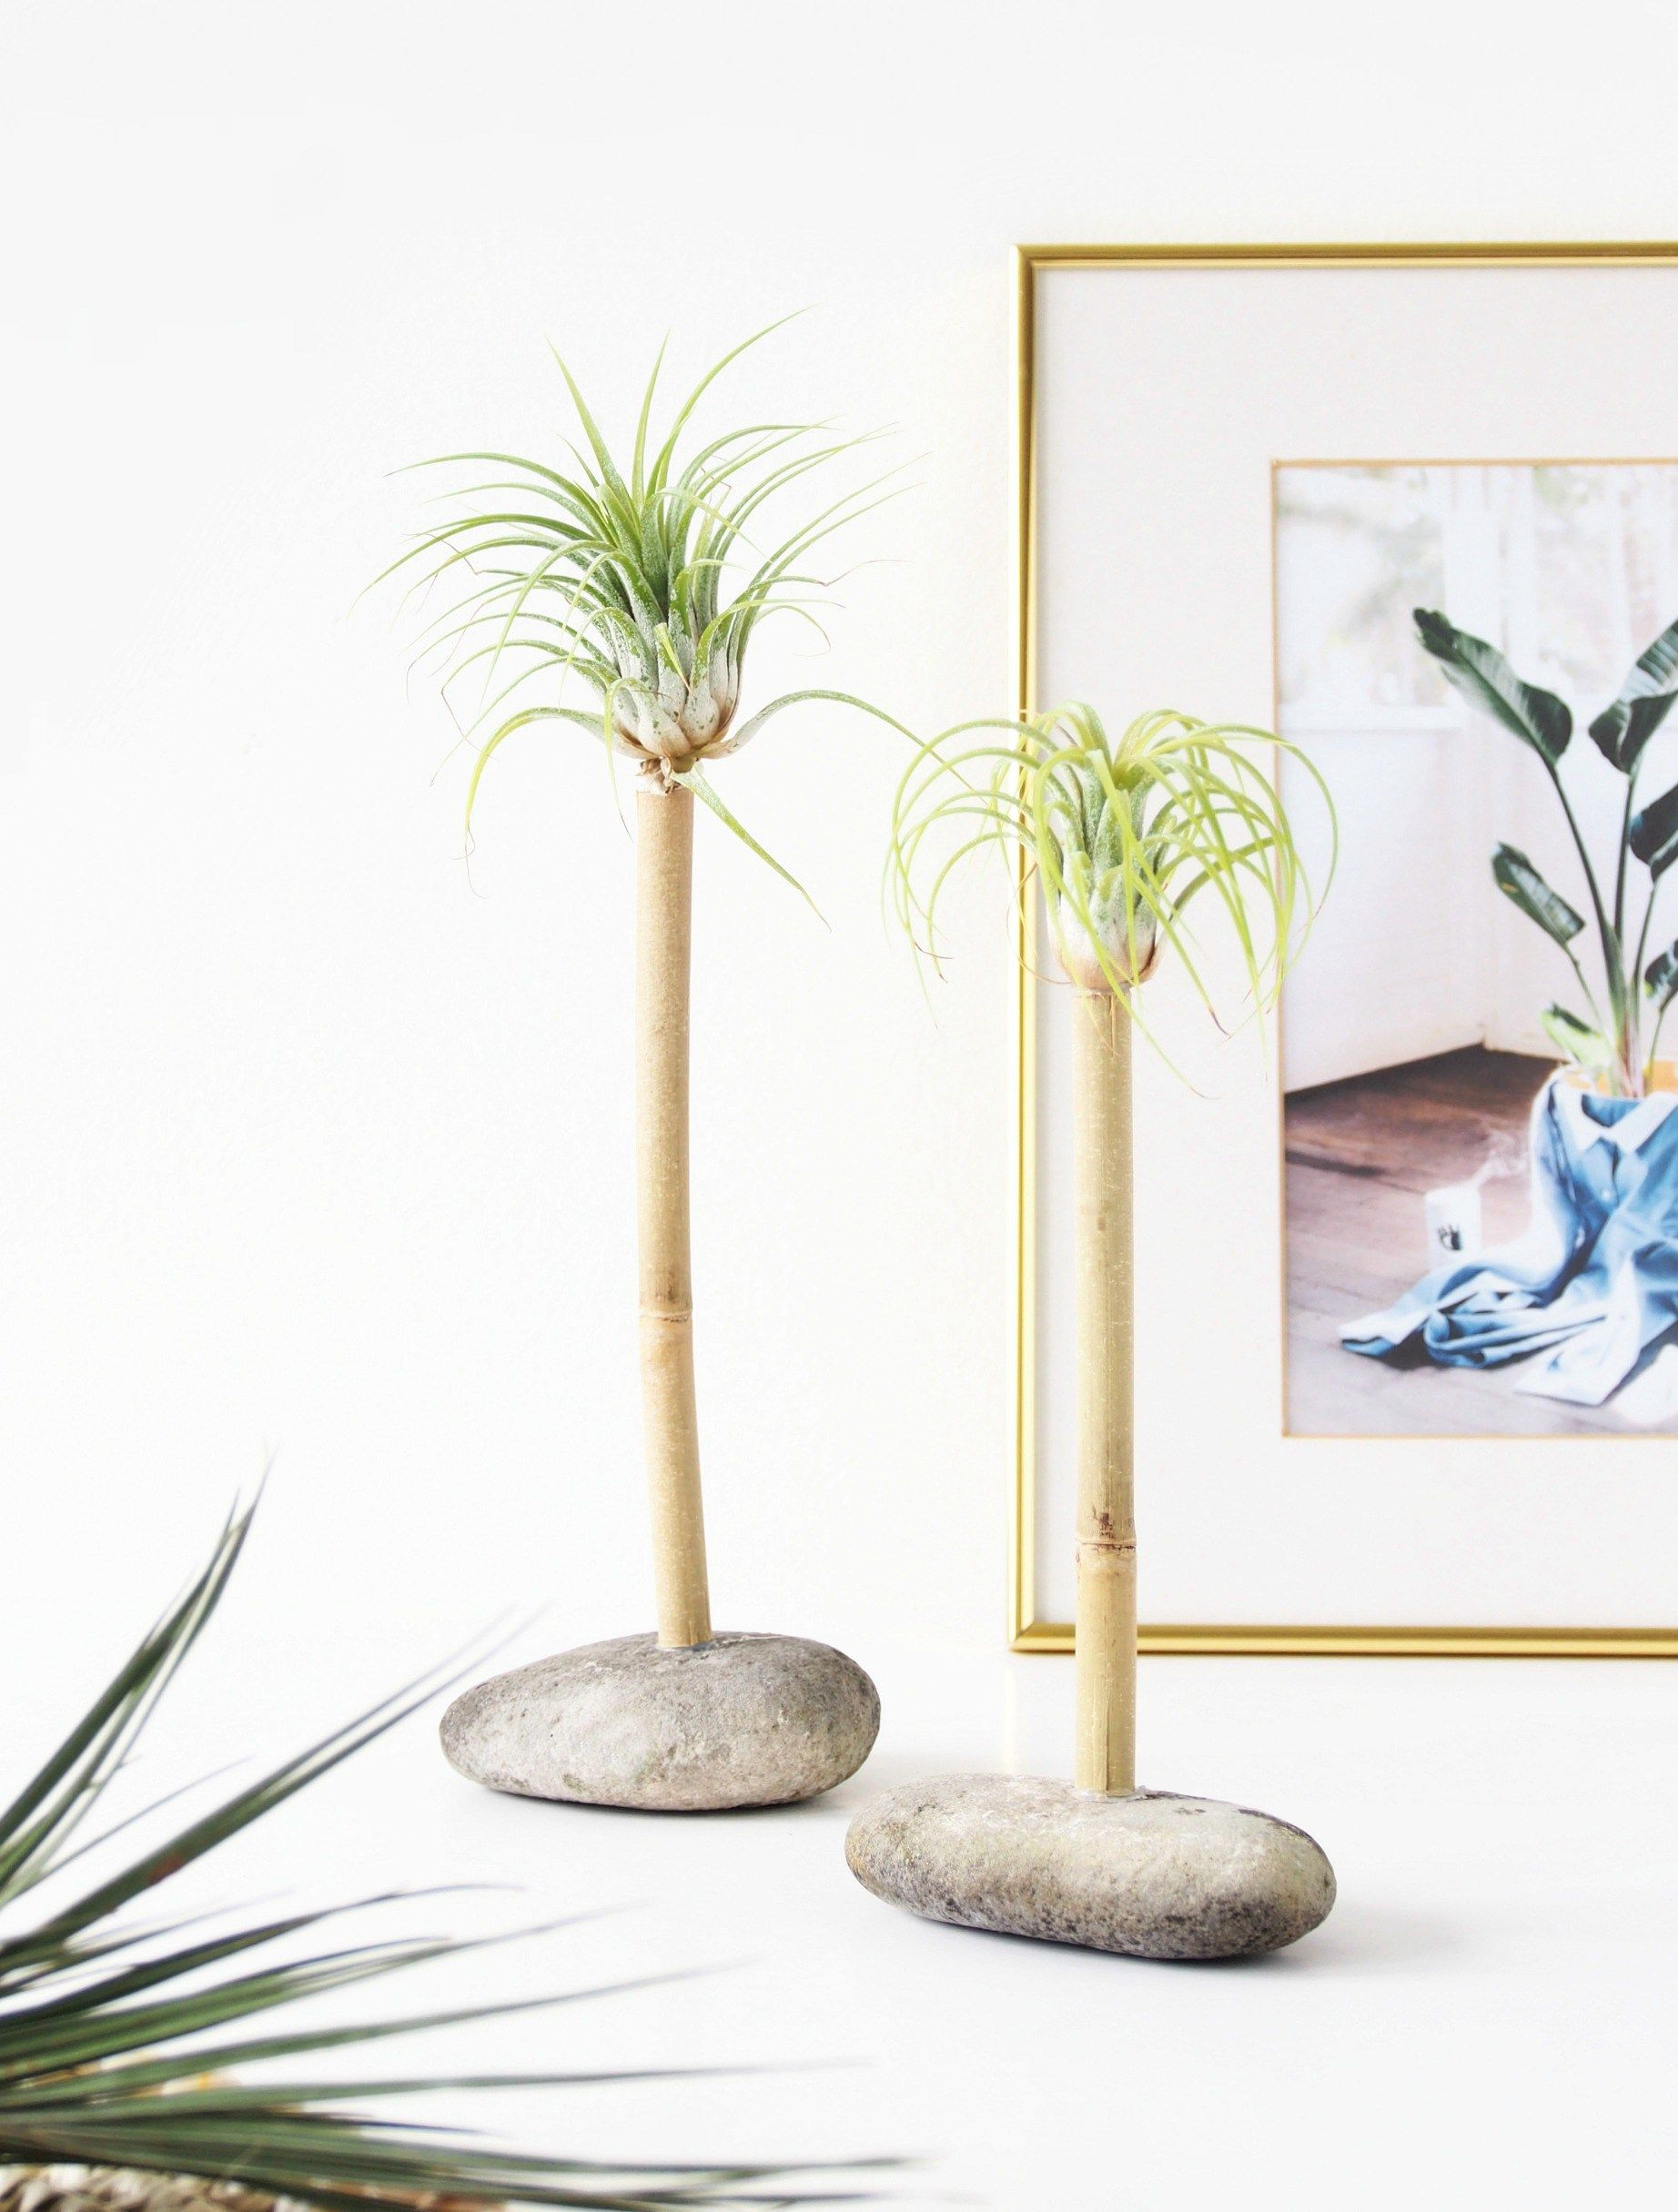 DIY Air Plant Palms. Make this fun mini stay-cation resort with the lovely Tillandsia darlings.